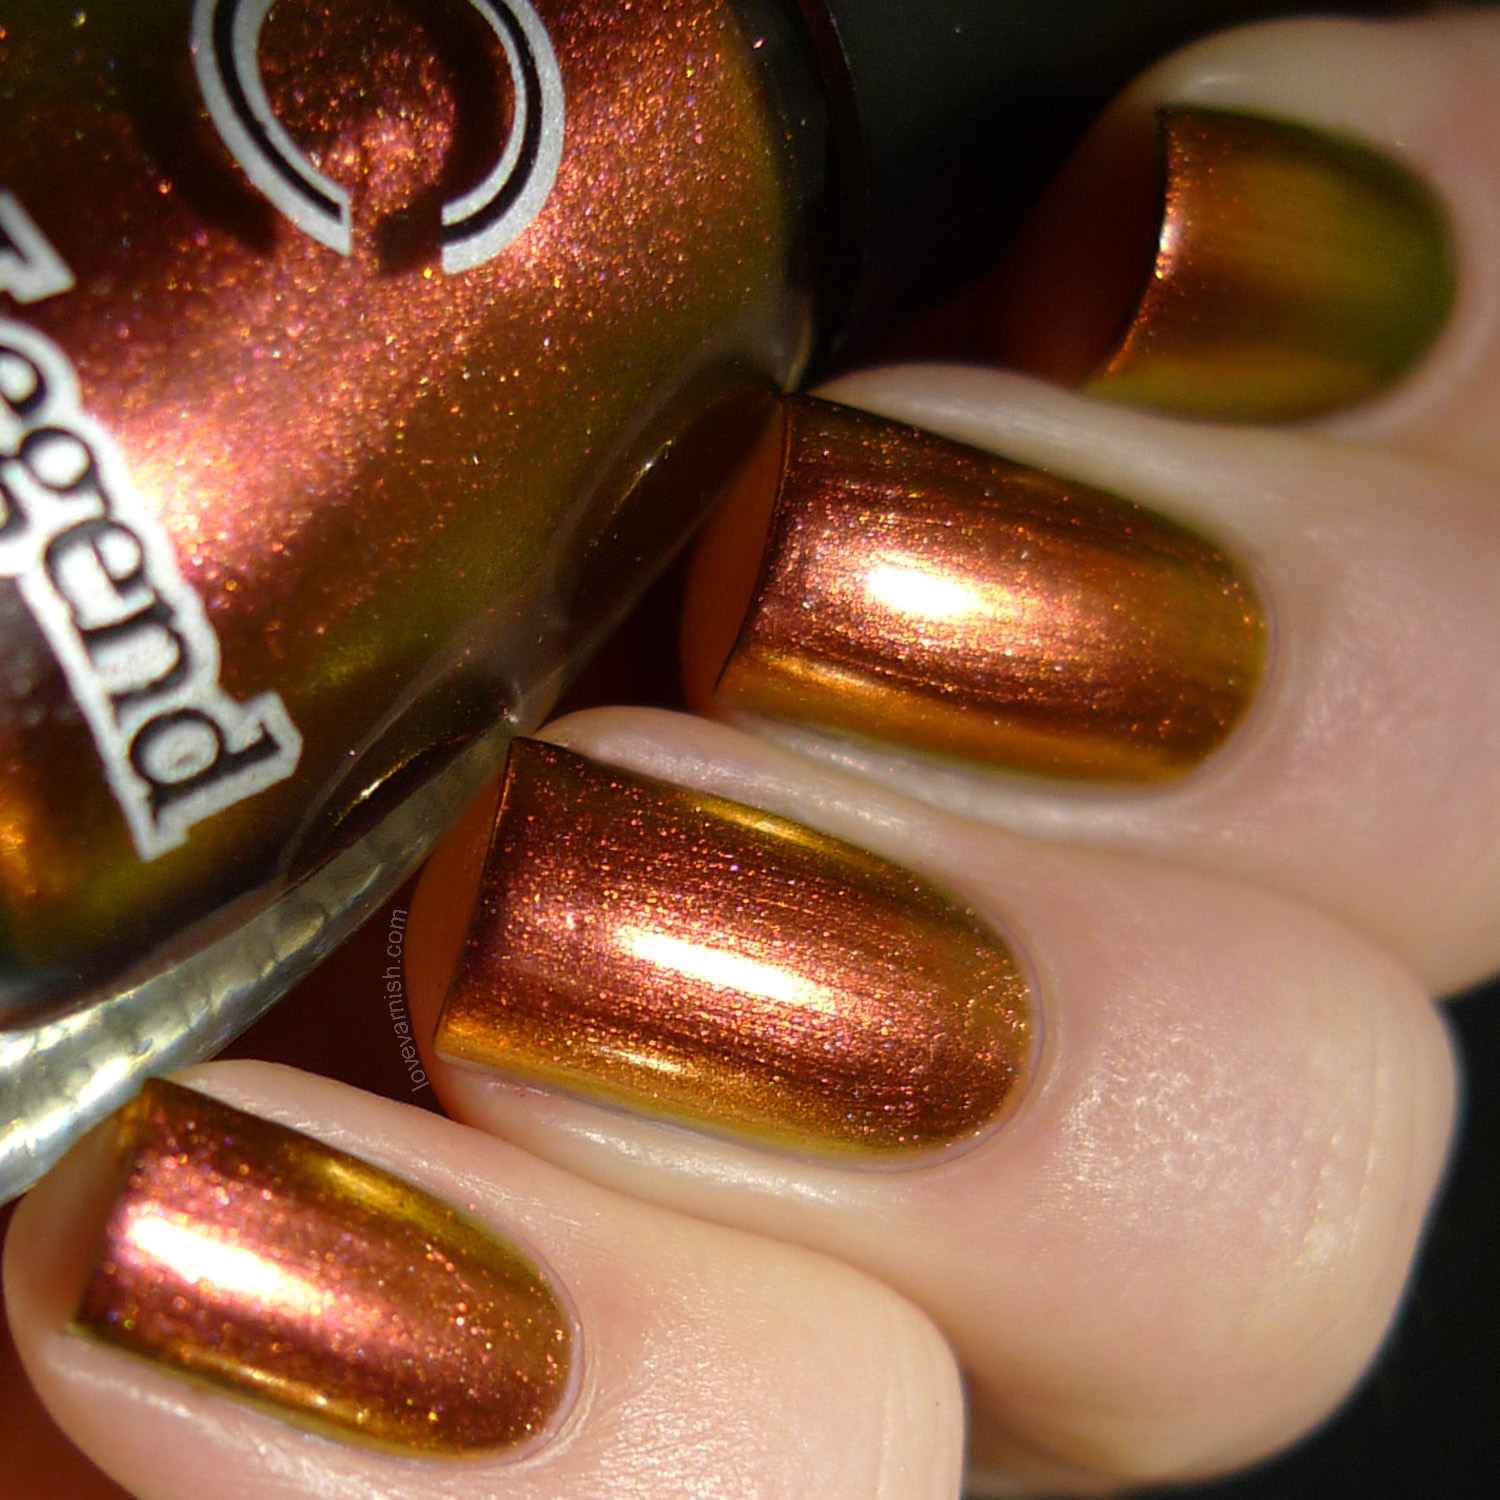 Dance Legend Chameleon Boo multichrome polish